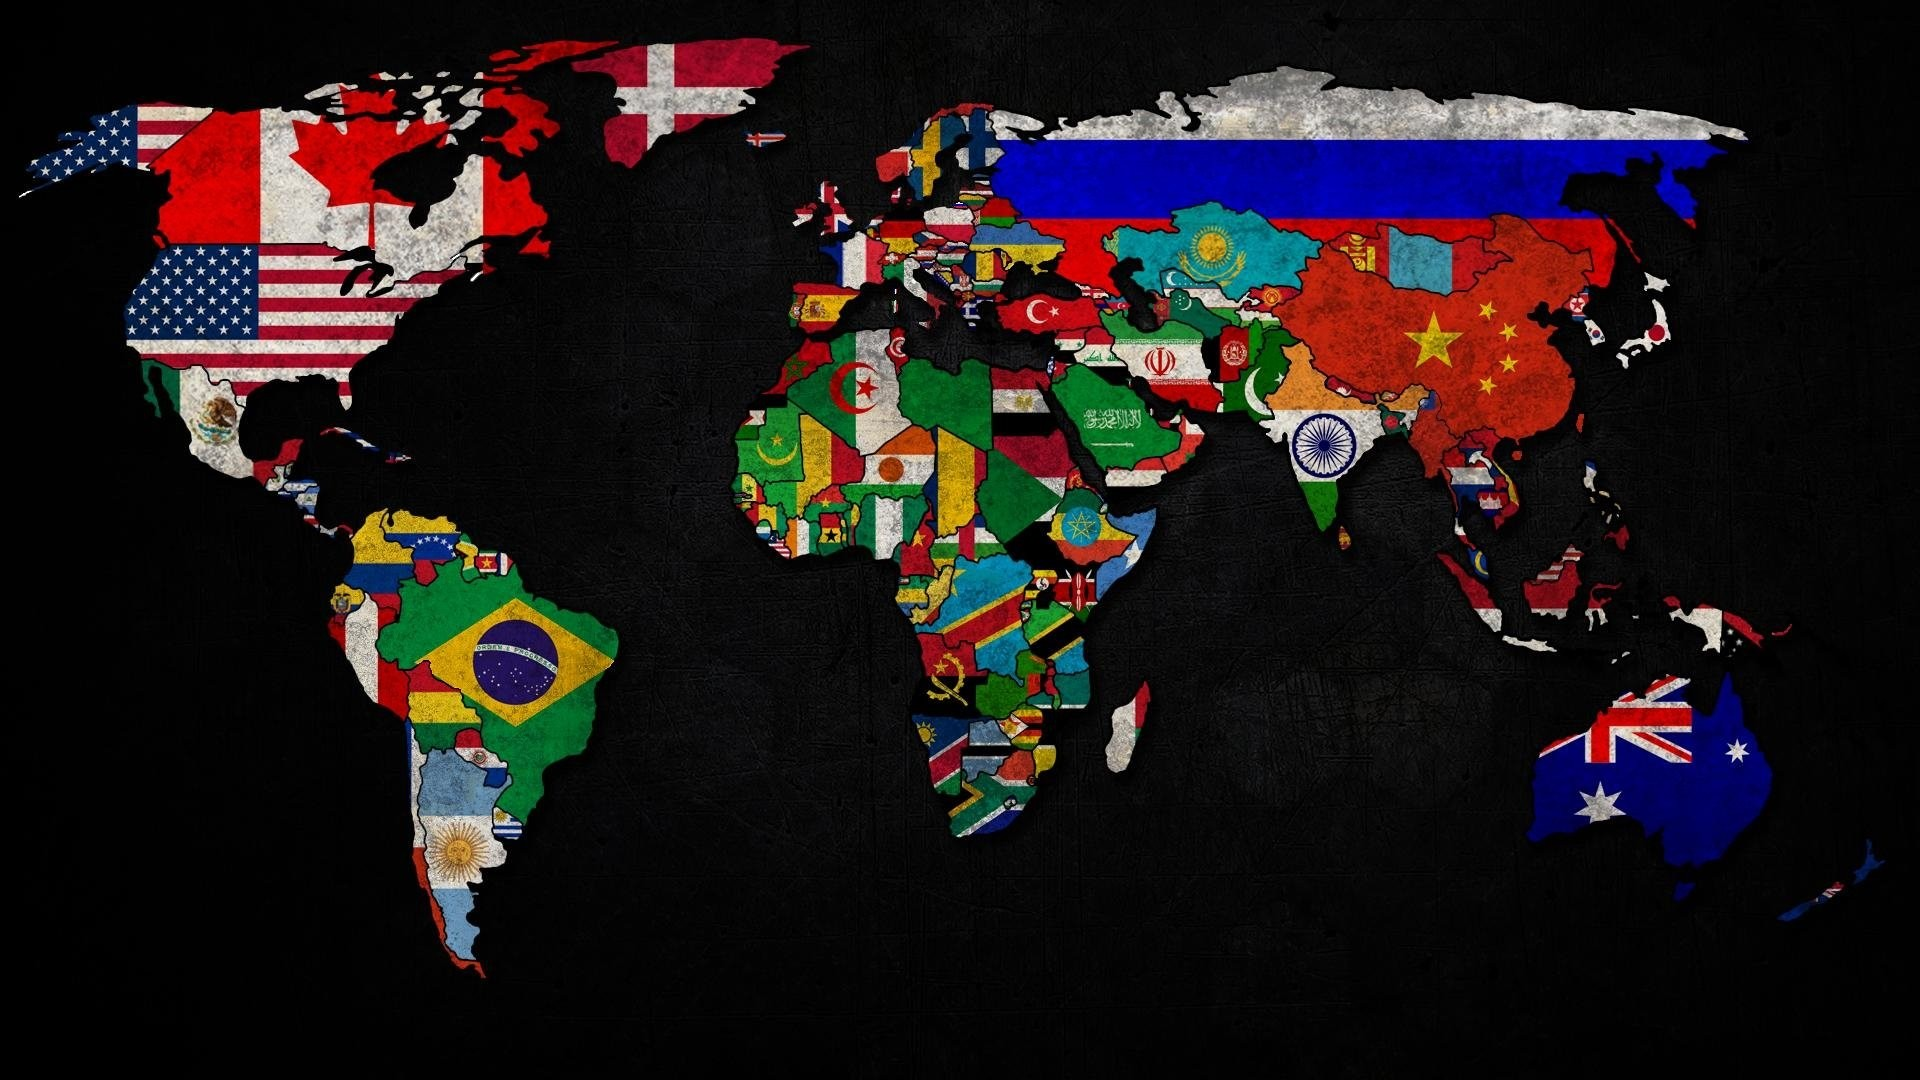 World map wallpaper download free amazing backgrounds for 1920x1080 full size world map wallpaper 1920x1080 full hd download gorgerous gumiabroncs Images